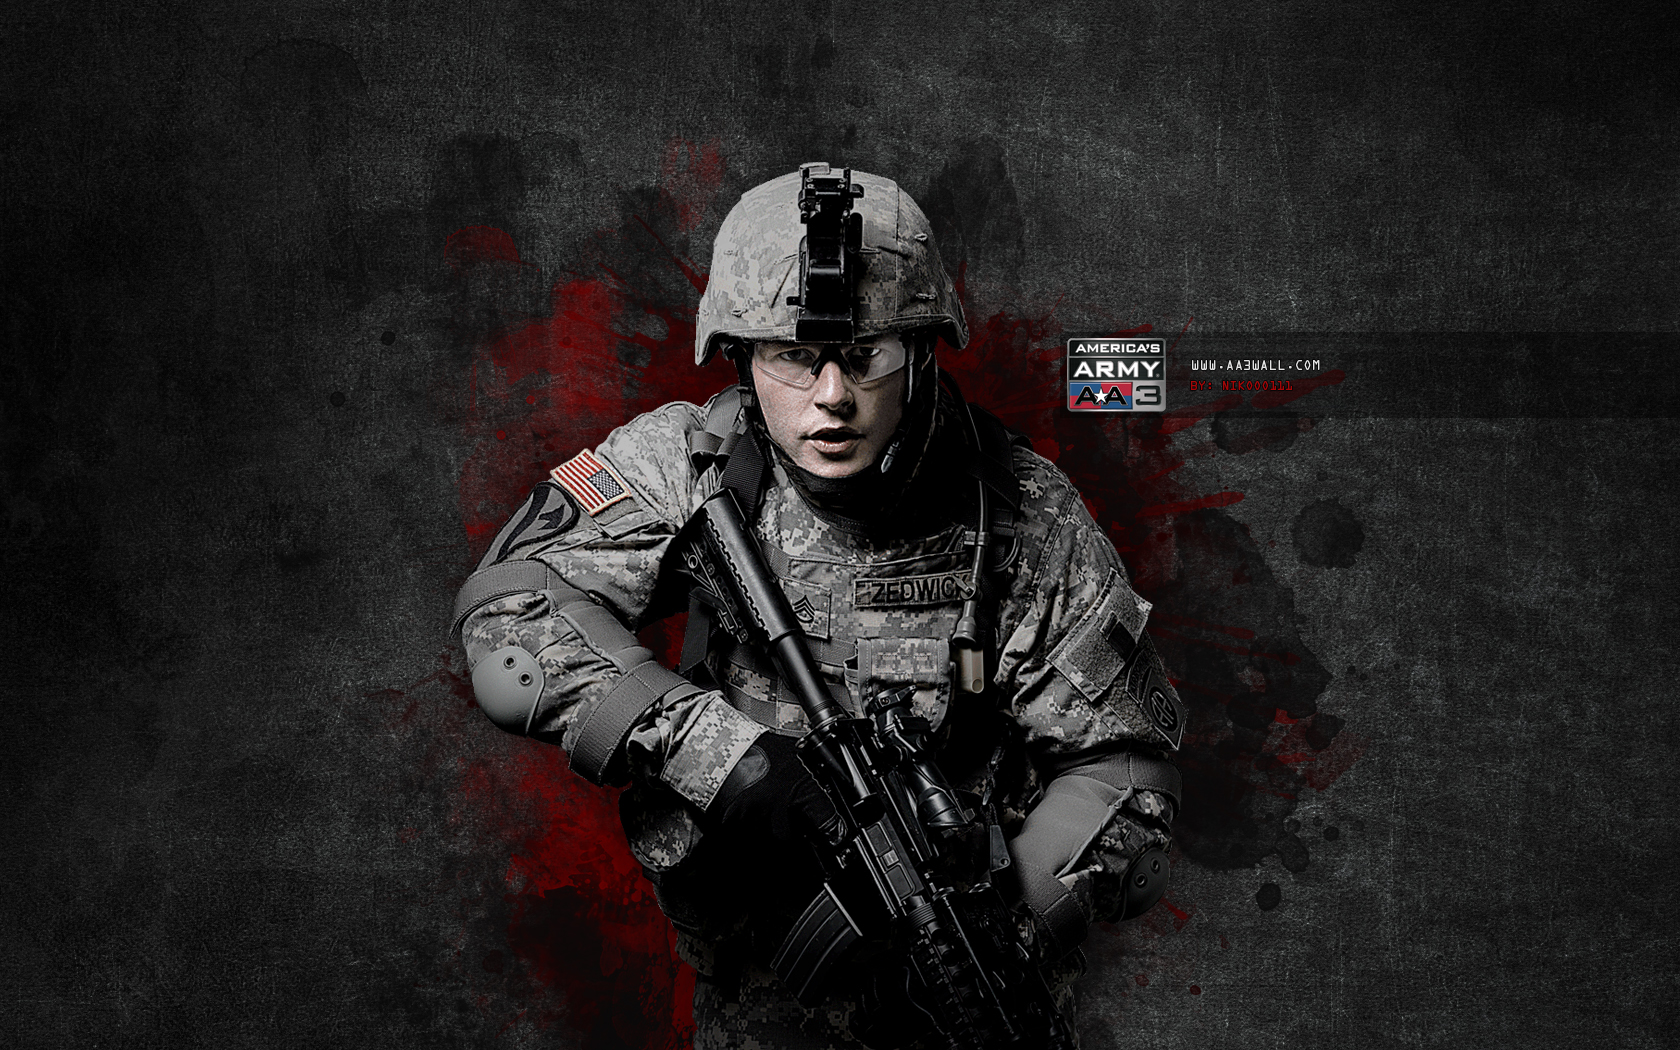 United States Army Wallpaper 1680x1050